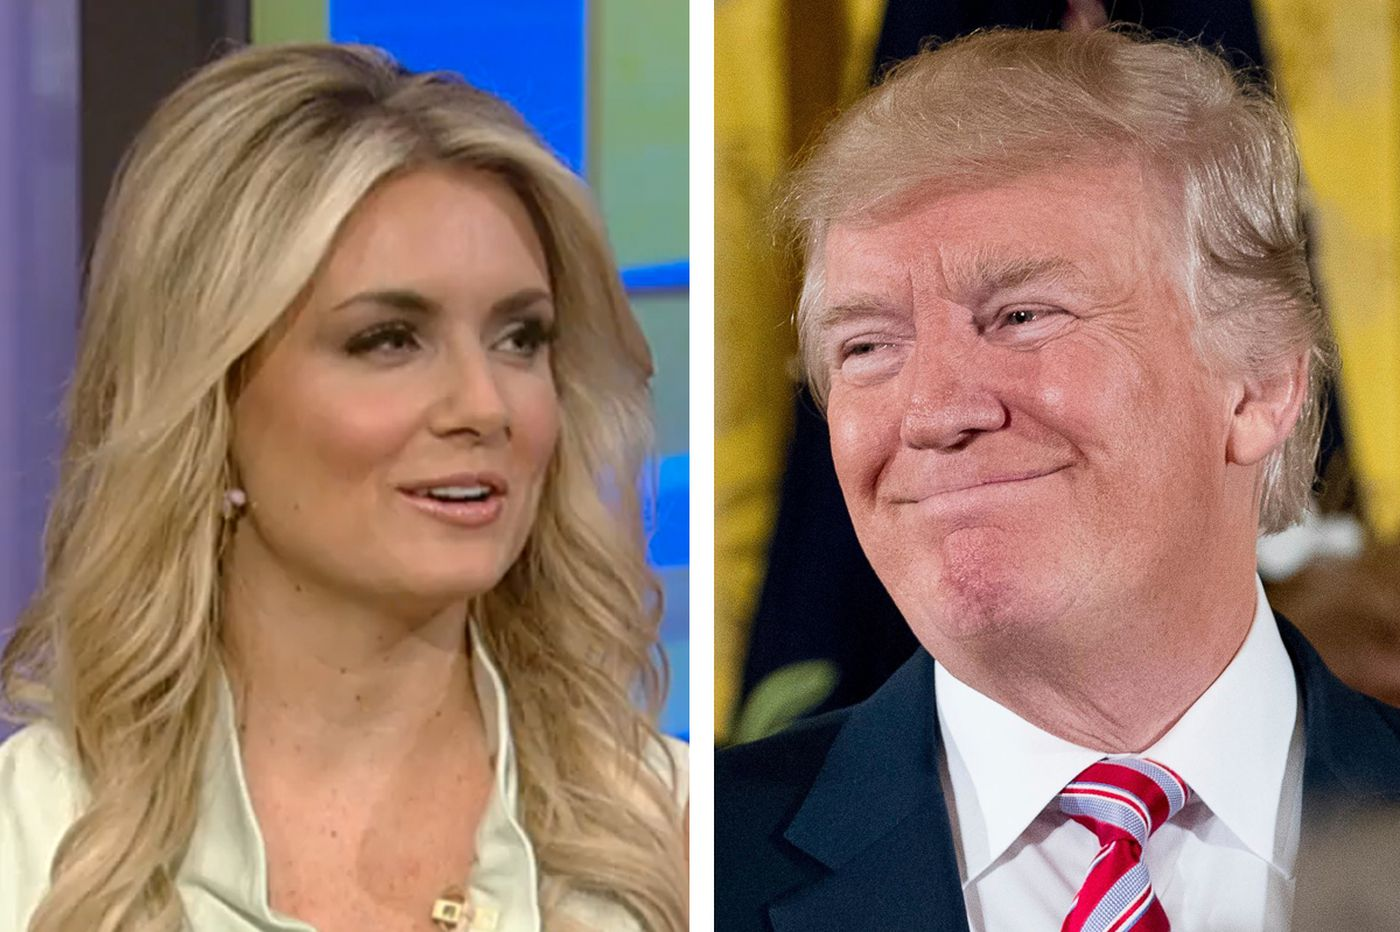 Ex-CSN Philly host Jillian Mele ends up on Trump's Twitter account